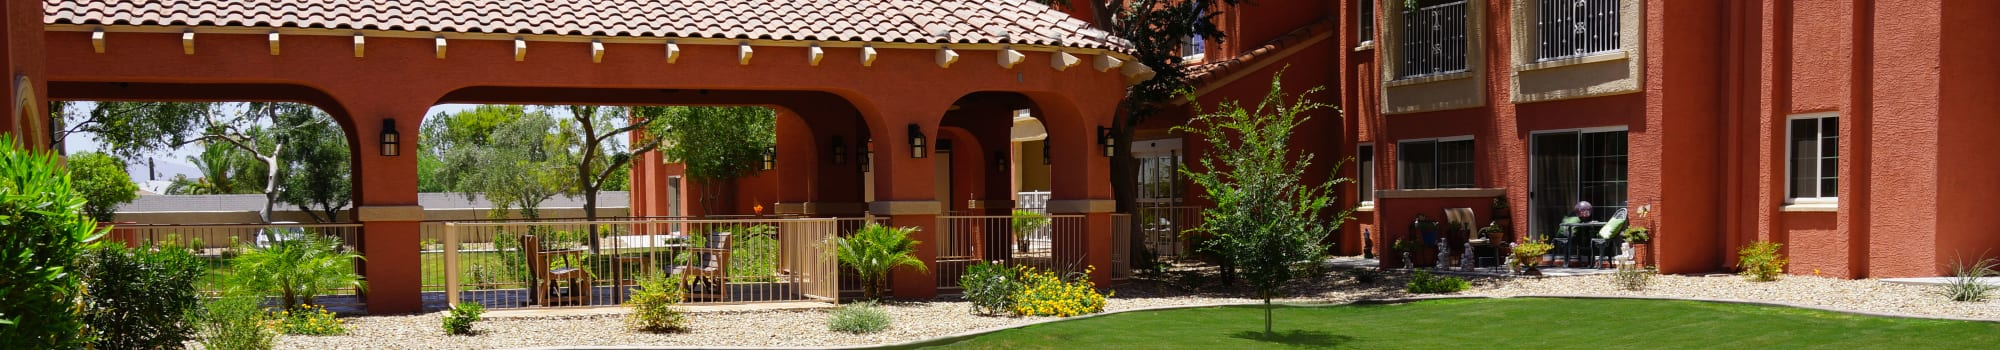 Map and directions to Casa Del Rio Senior Living in Peoria, Arizona